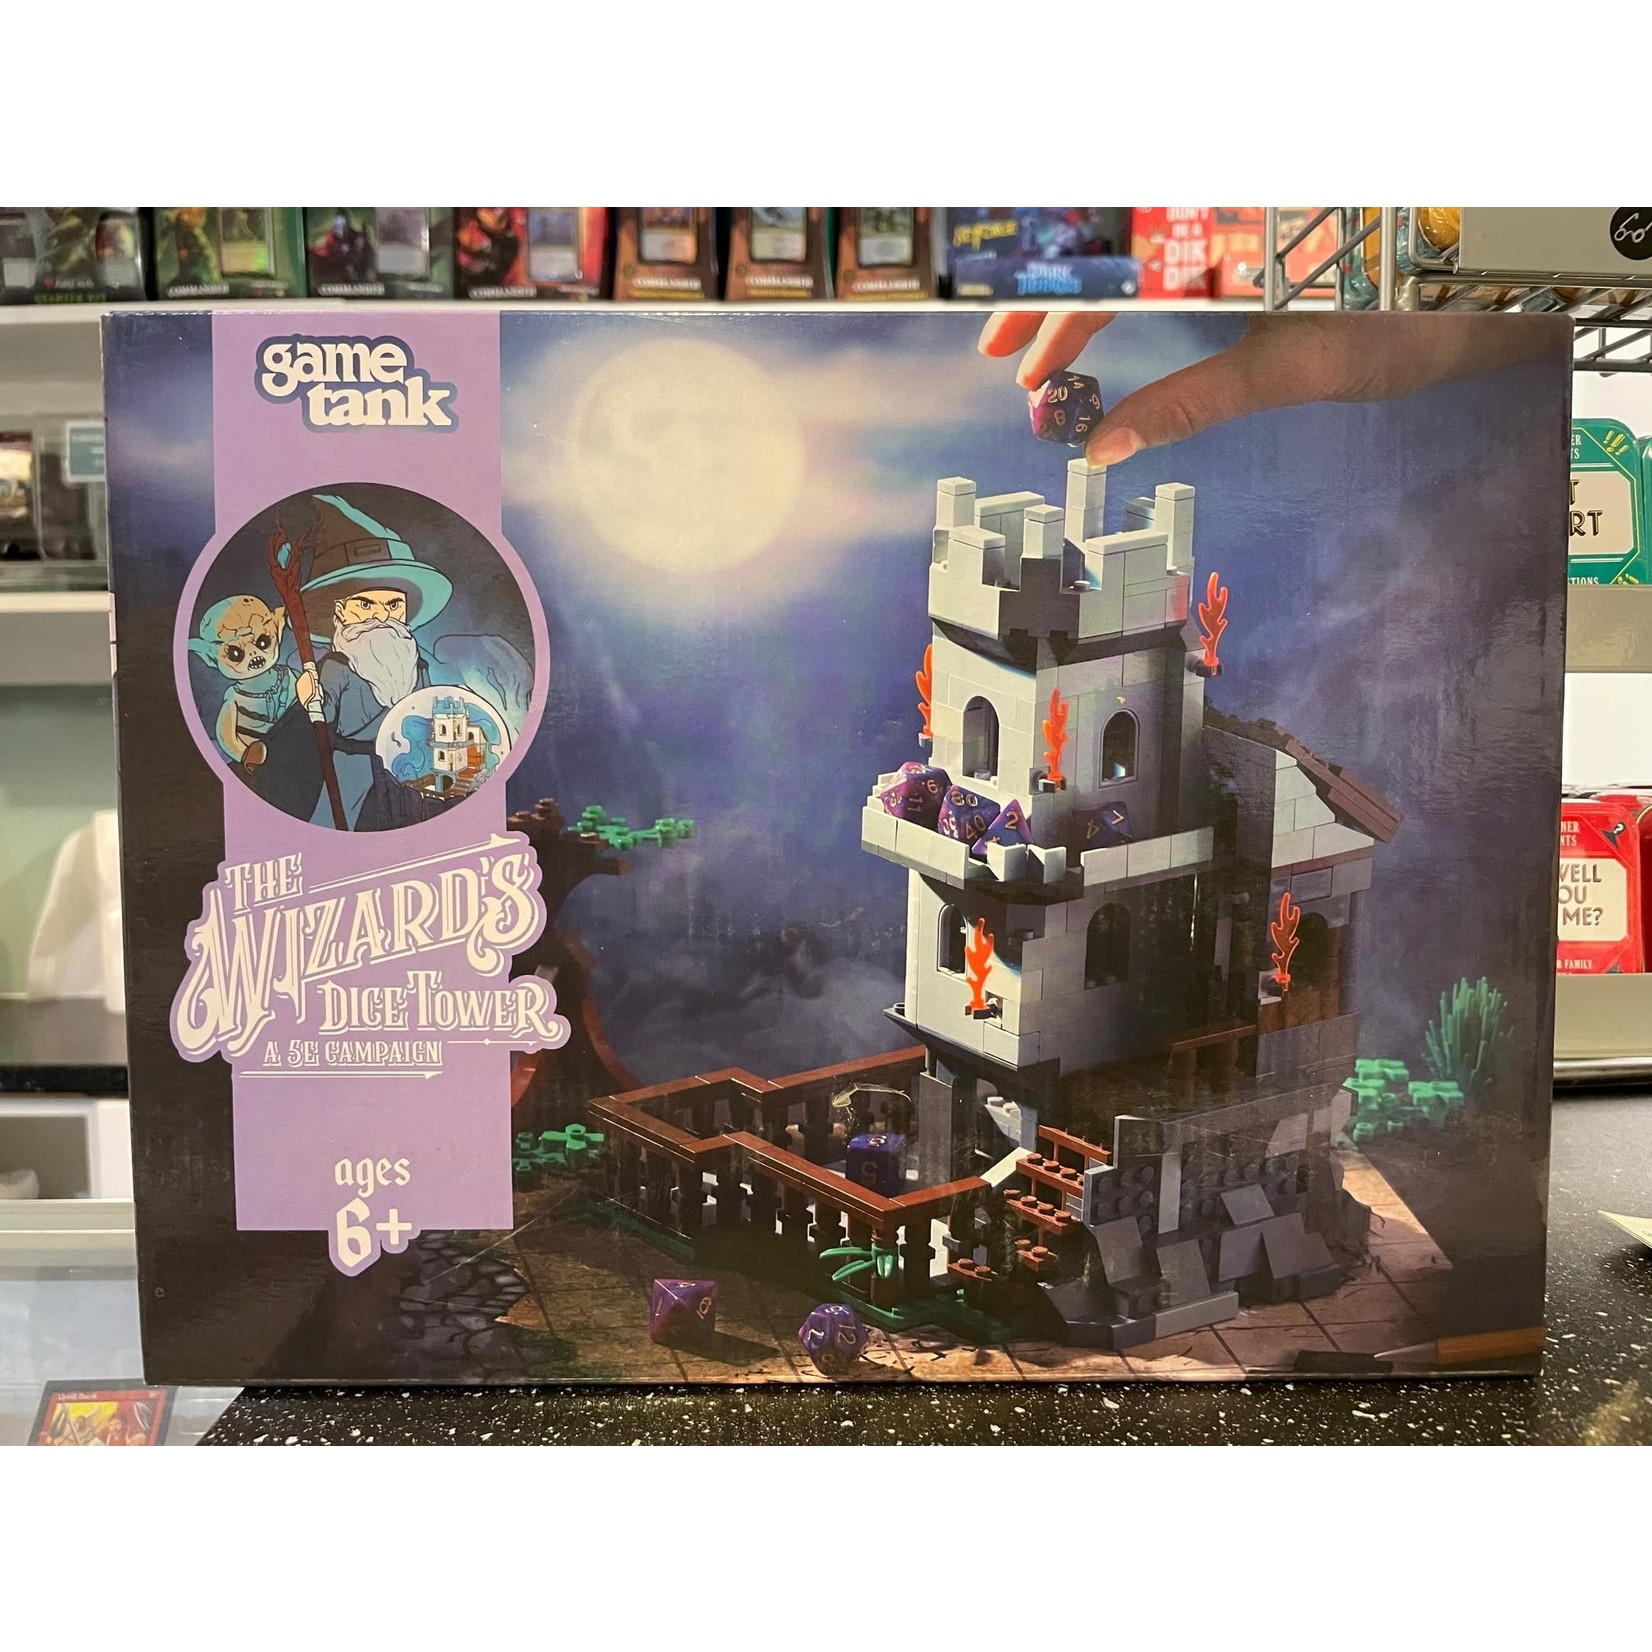 Game Tank The Wizard's Dice Tower (Brick Set & Campaign